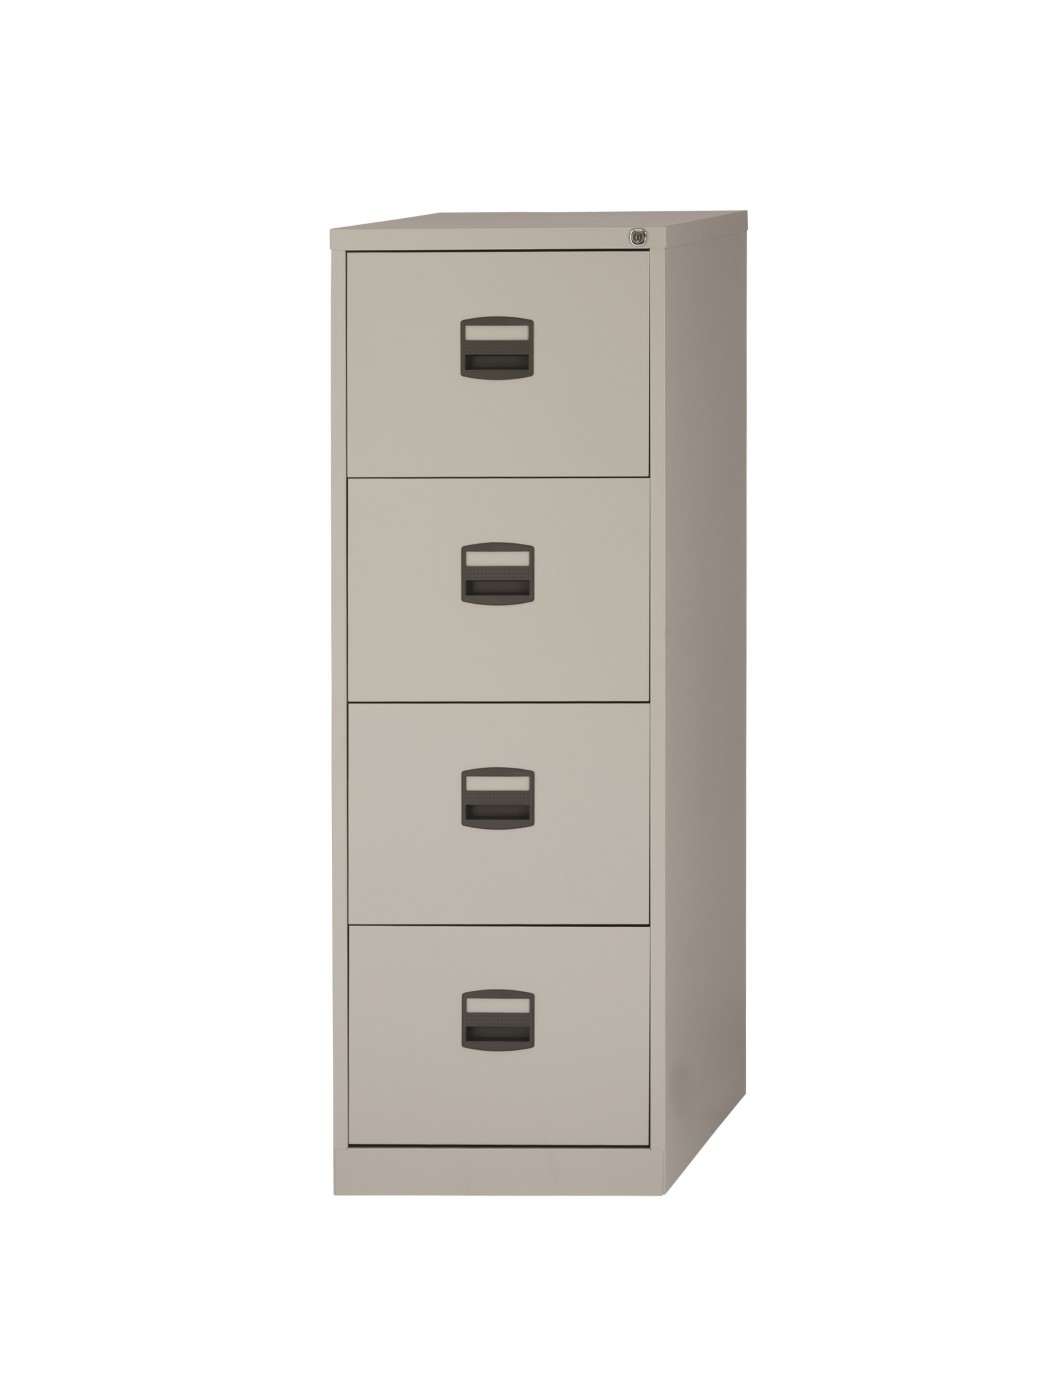 Bisley 4 Drawer Economy Contract Filing Cabinet DCF4   Enlarged View Design Ideas